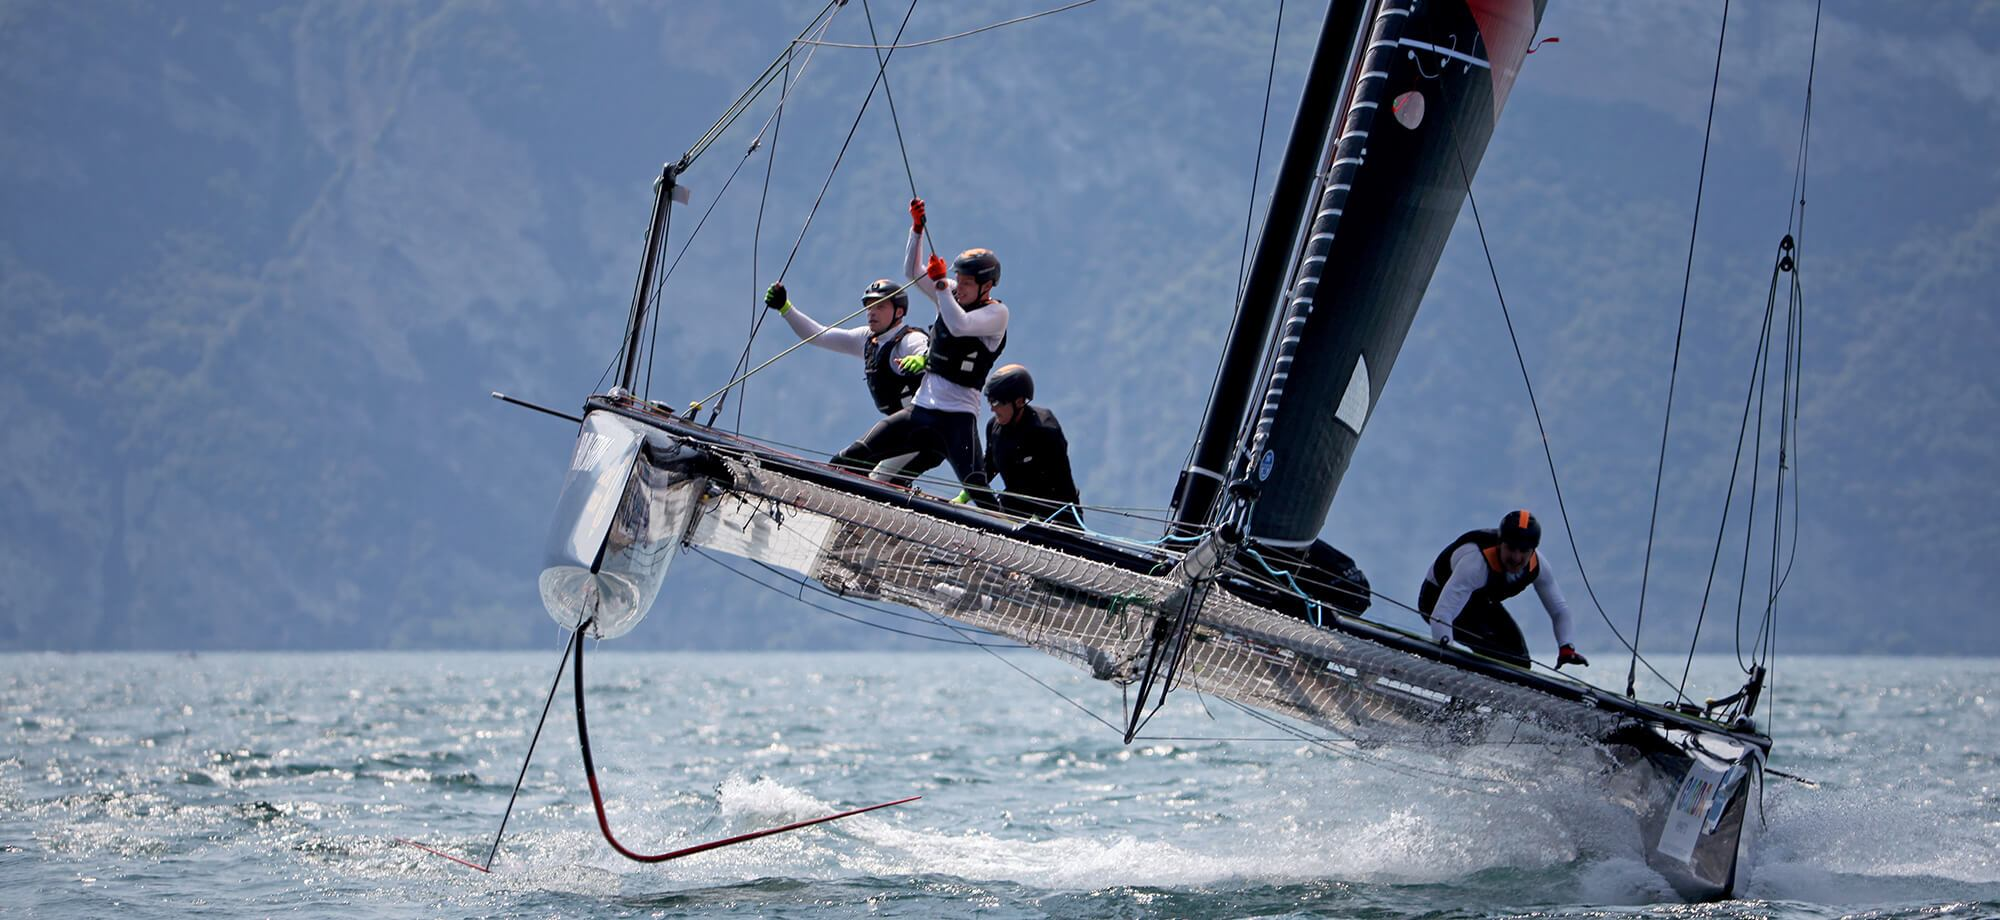 GC32 Action on lake Traunsee